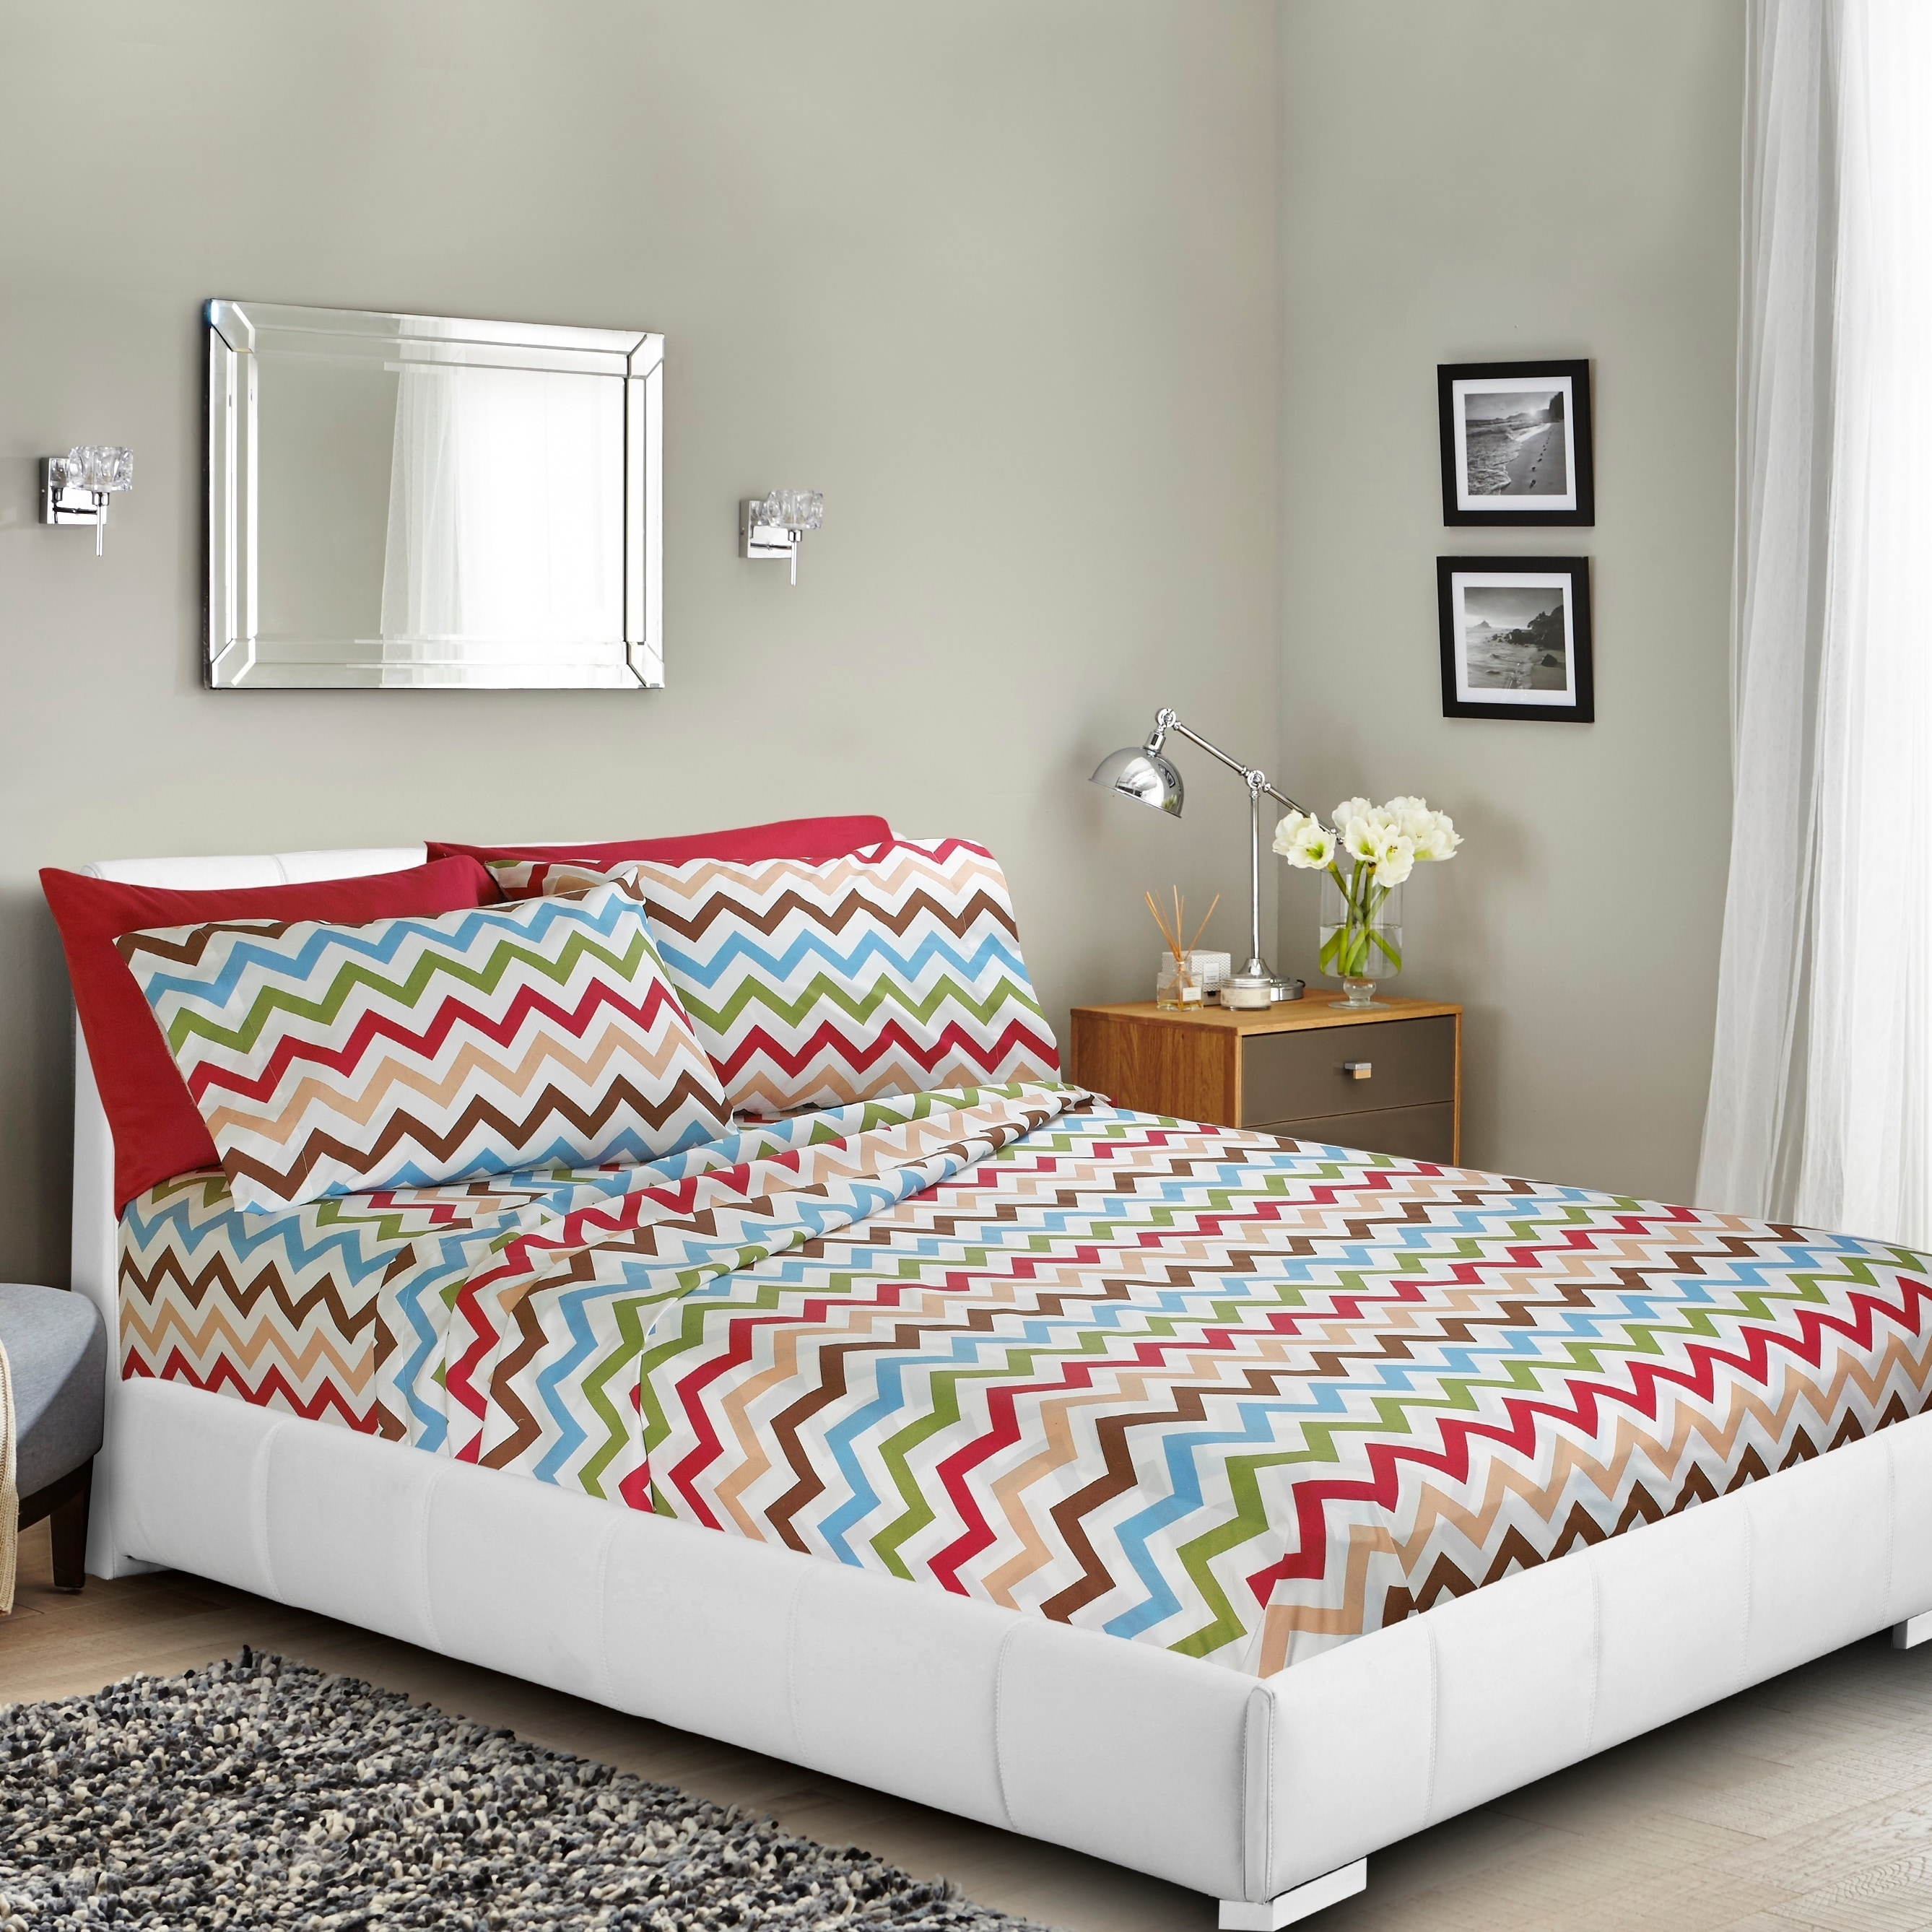 Clara Clark Printed Bed Sheet Set, Deep pocket fitted sheets, double set of pillowcases - By